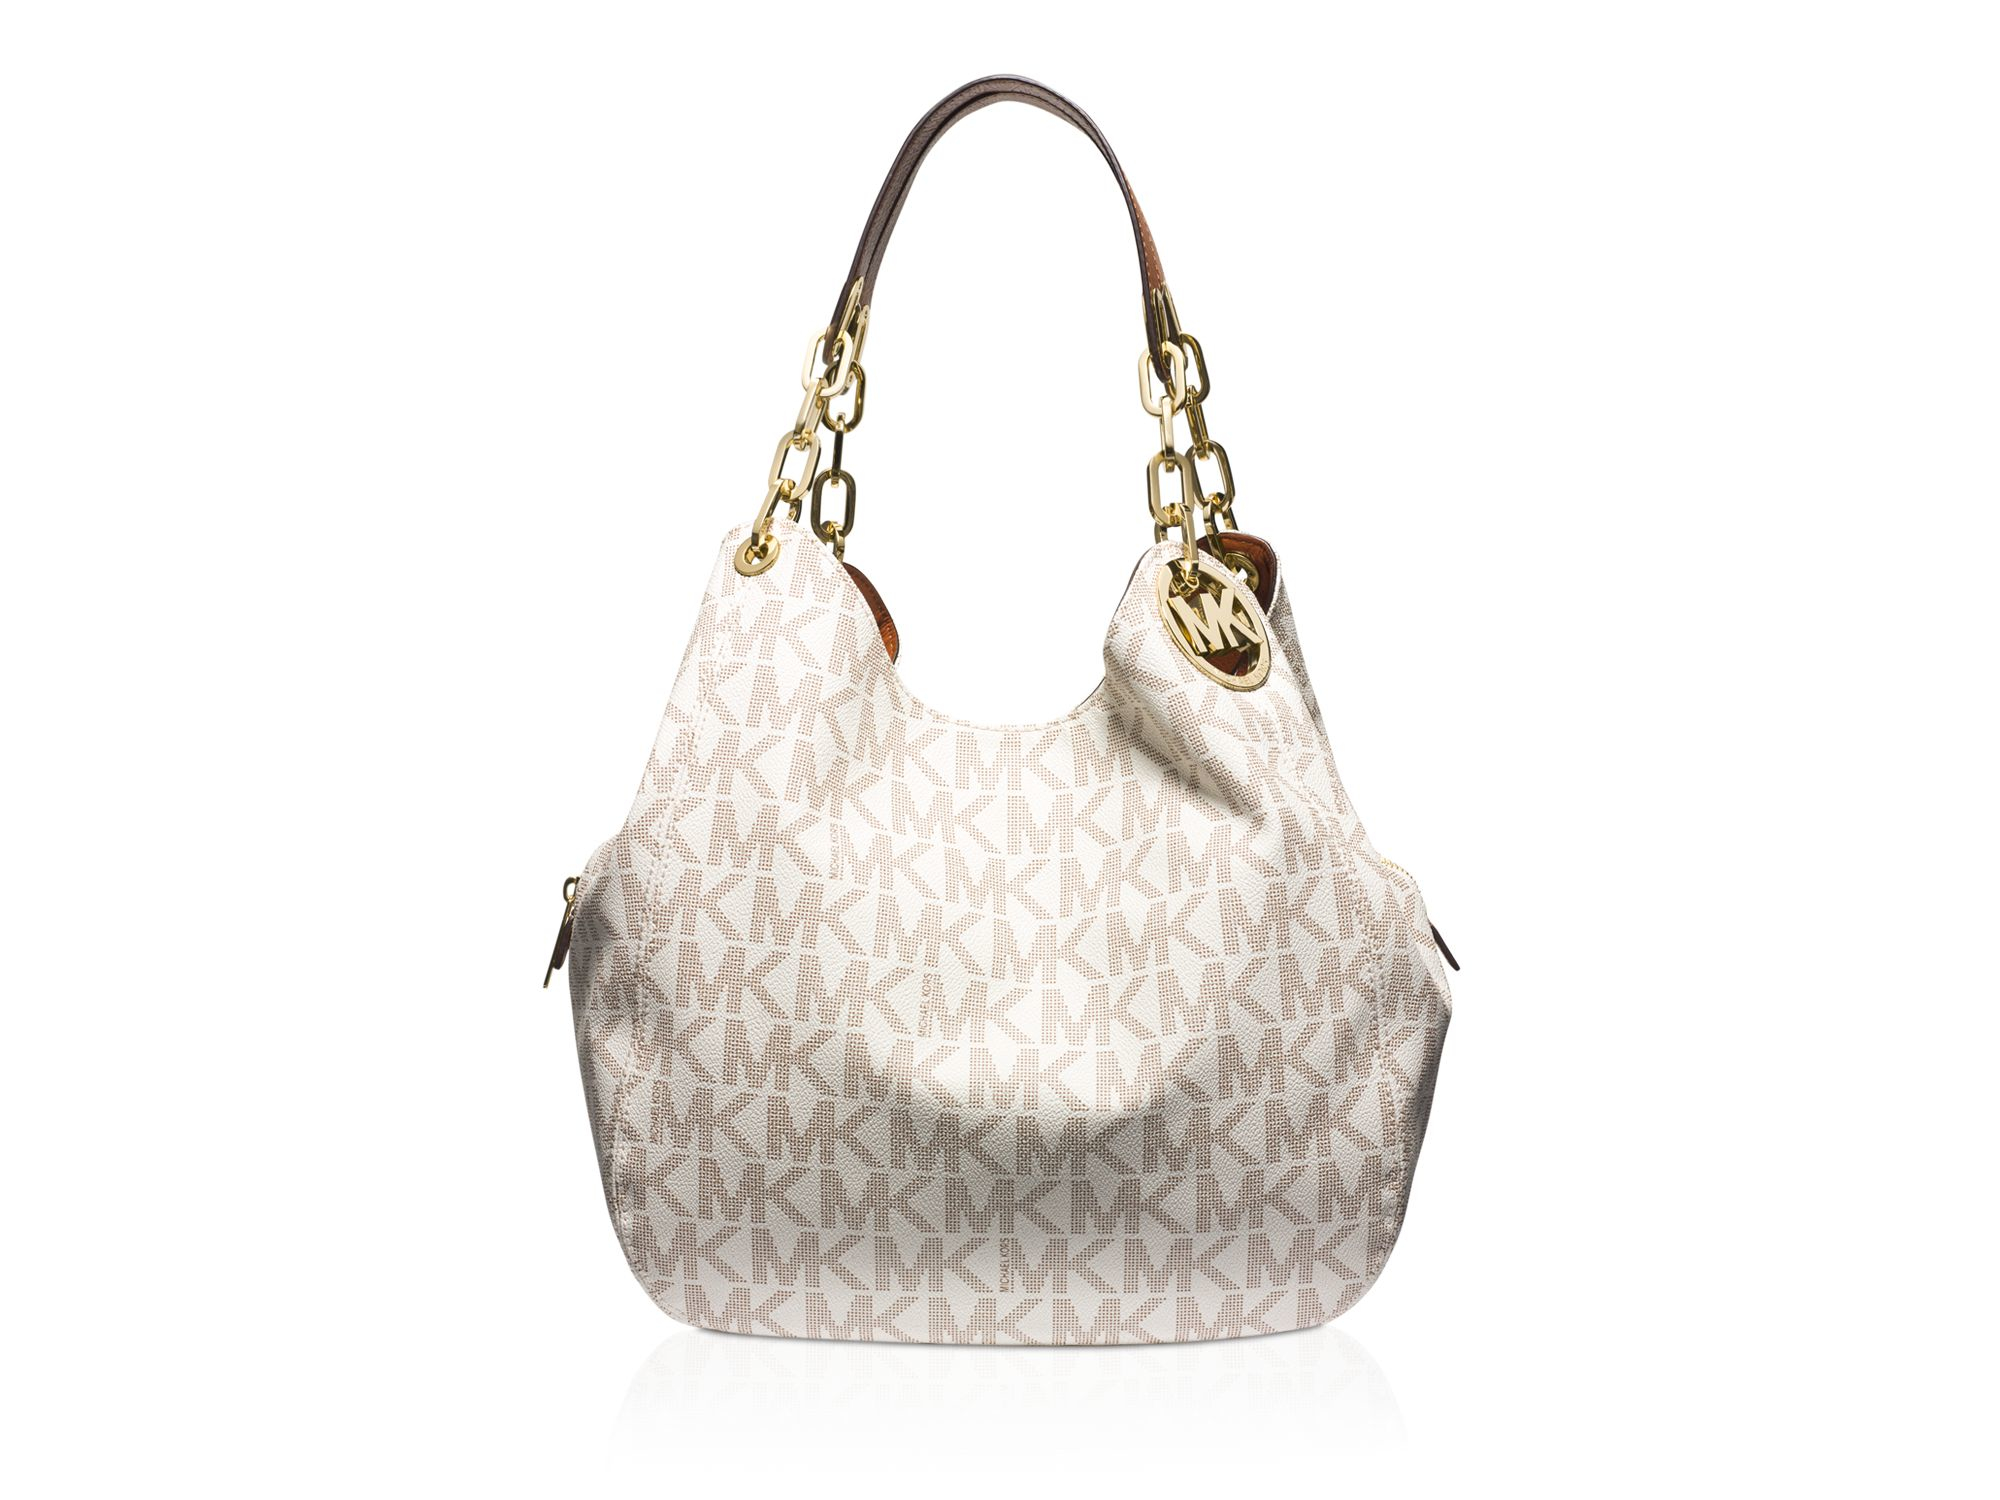 72a33bd86390 Gallery. Previously sold at: Bloomingdale's · Women's Michael By Michael  Kors Fulton